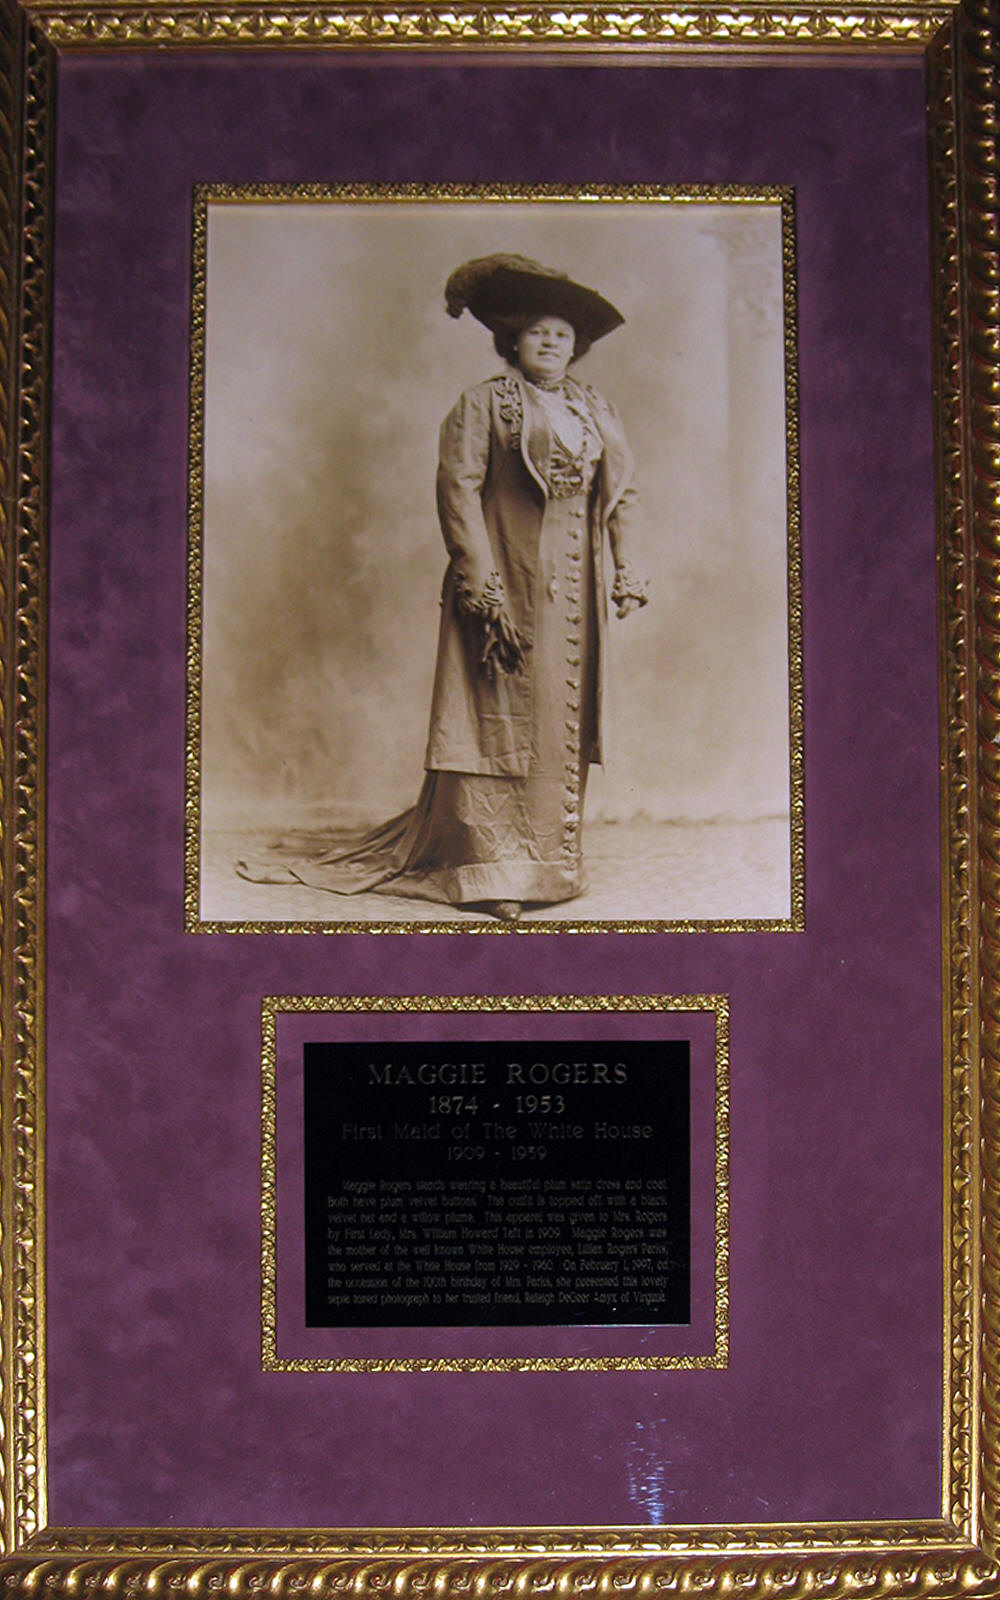 Maggie Rogers First Maid of The White House